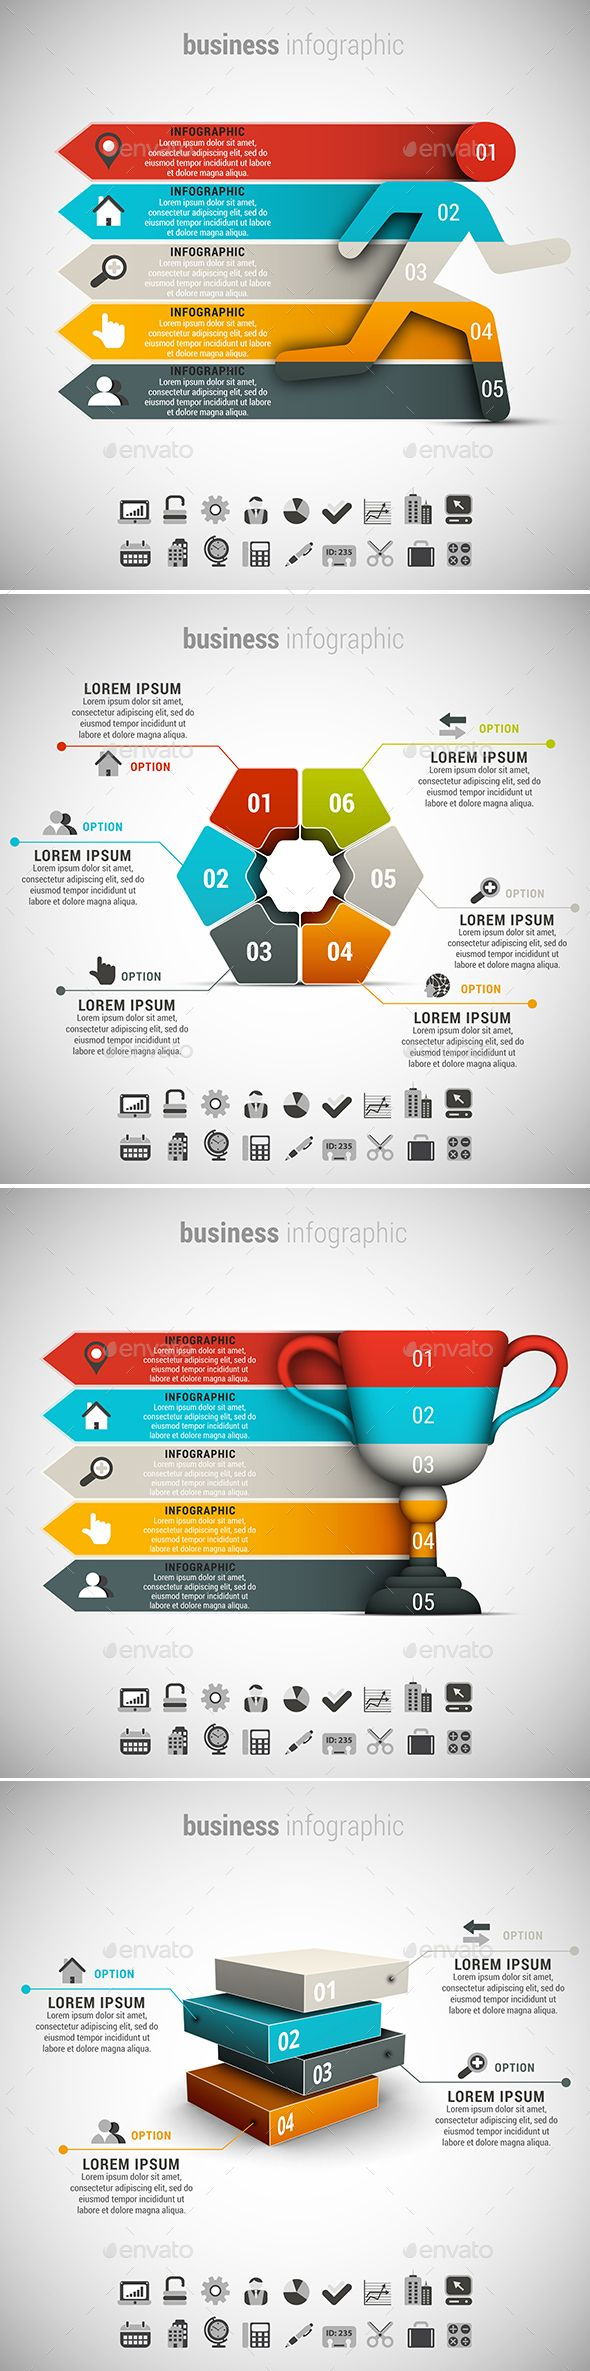 4 in 1 Business Infographics Template Bundle. Download here: http://graphicriver.net/item/4-in-1-business-infographics-bundle/15463927?ref=ksioks